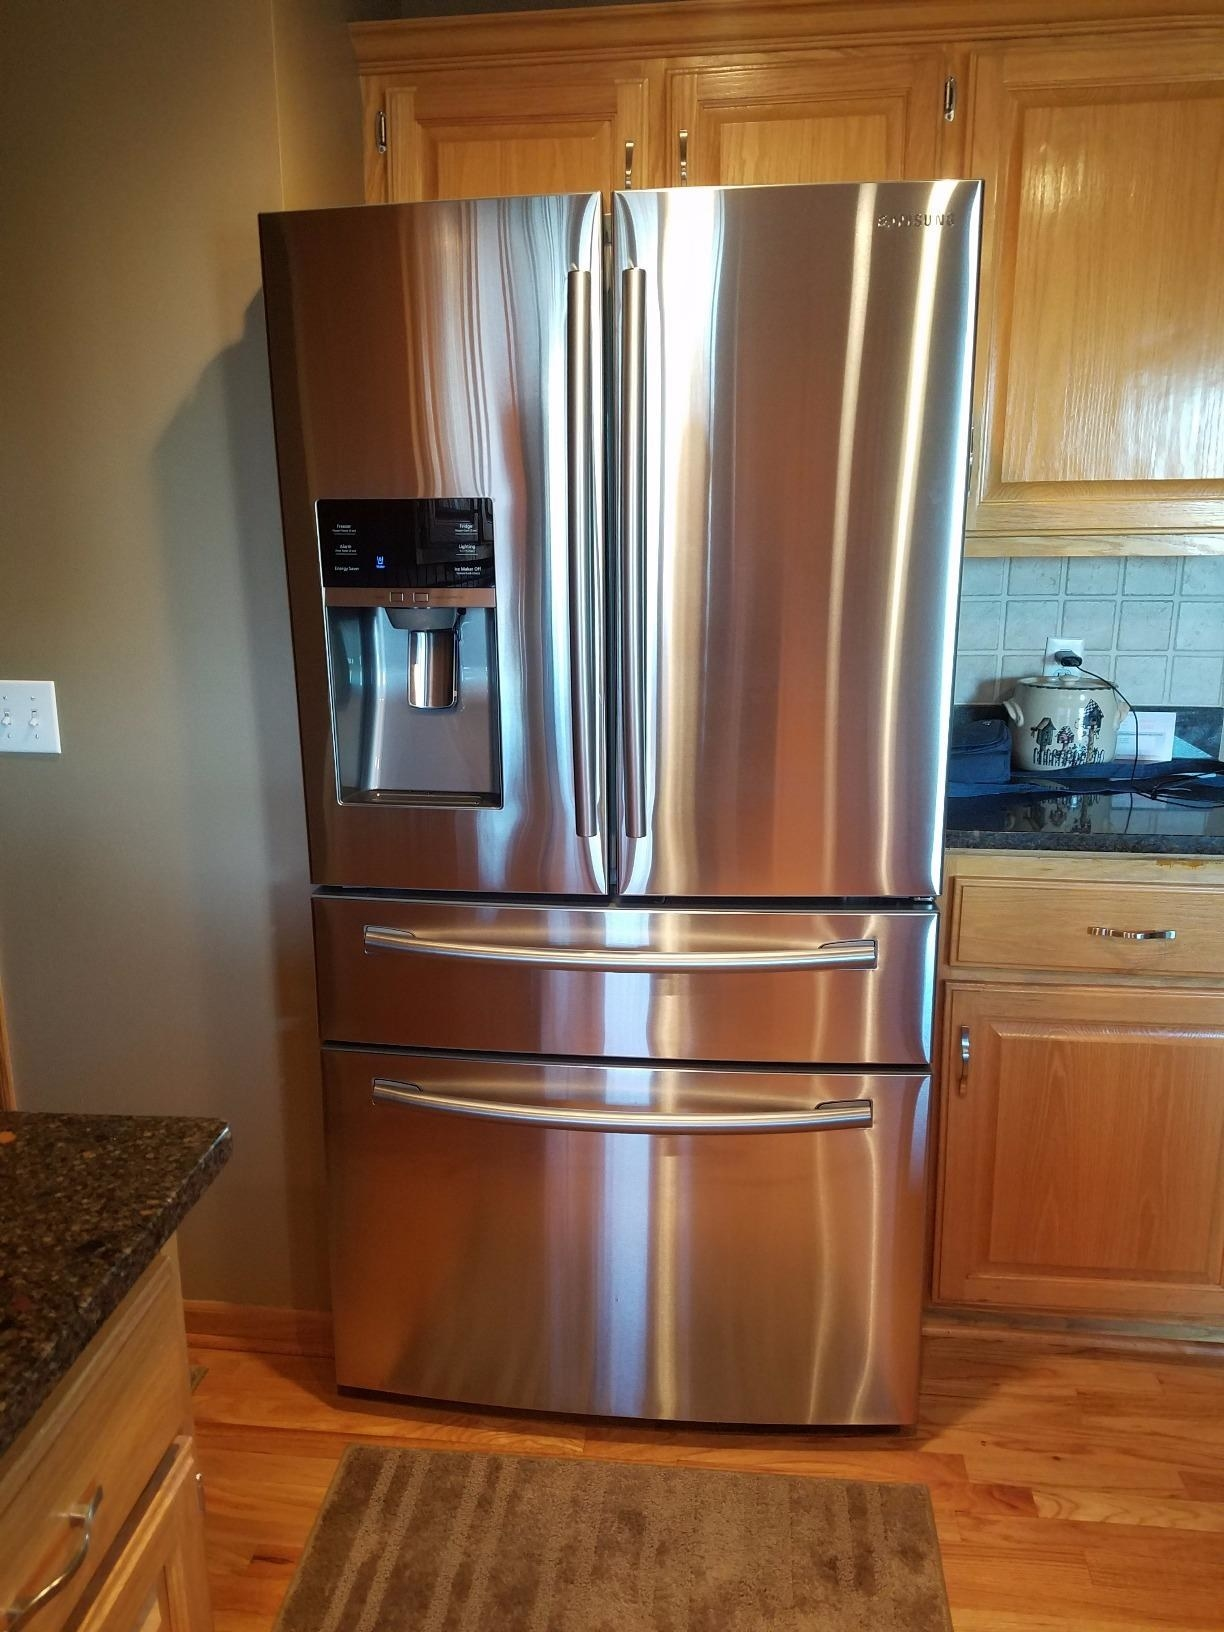 A review image of a super shiny stainless steel fridge